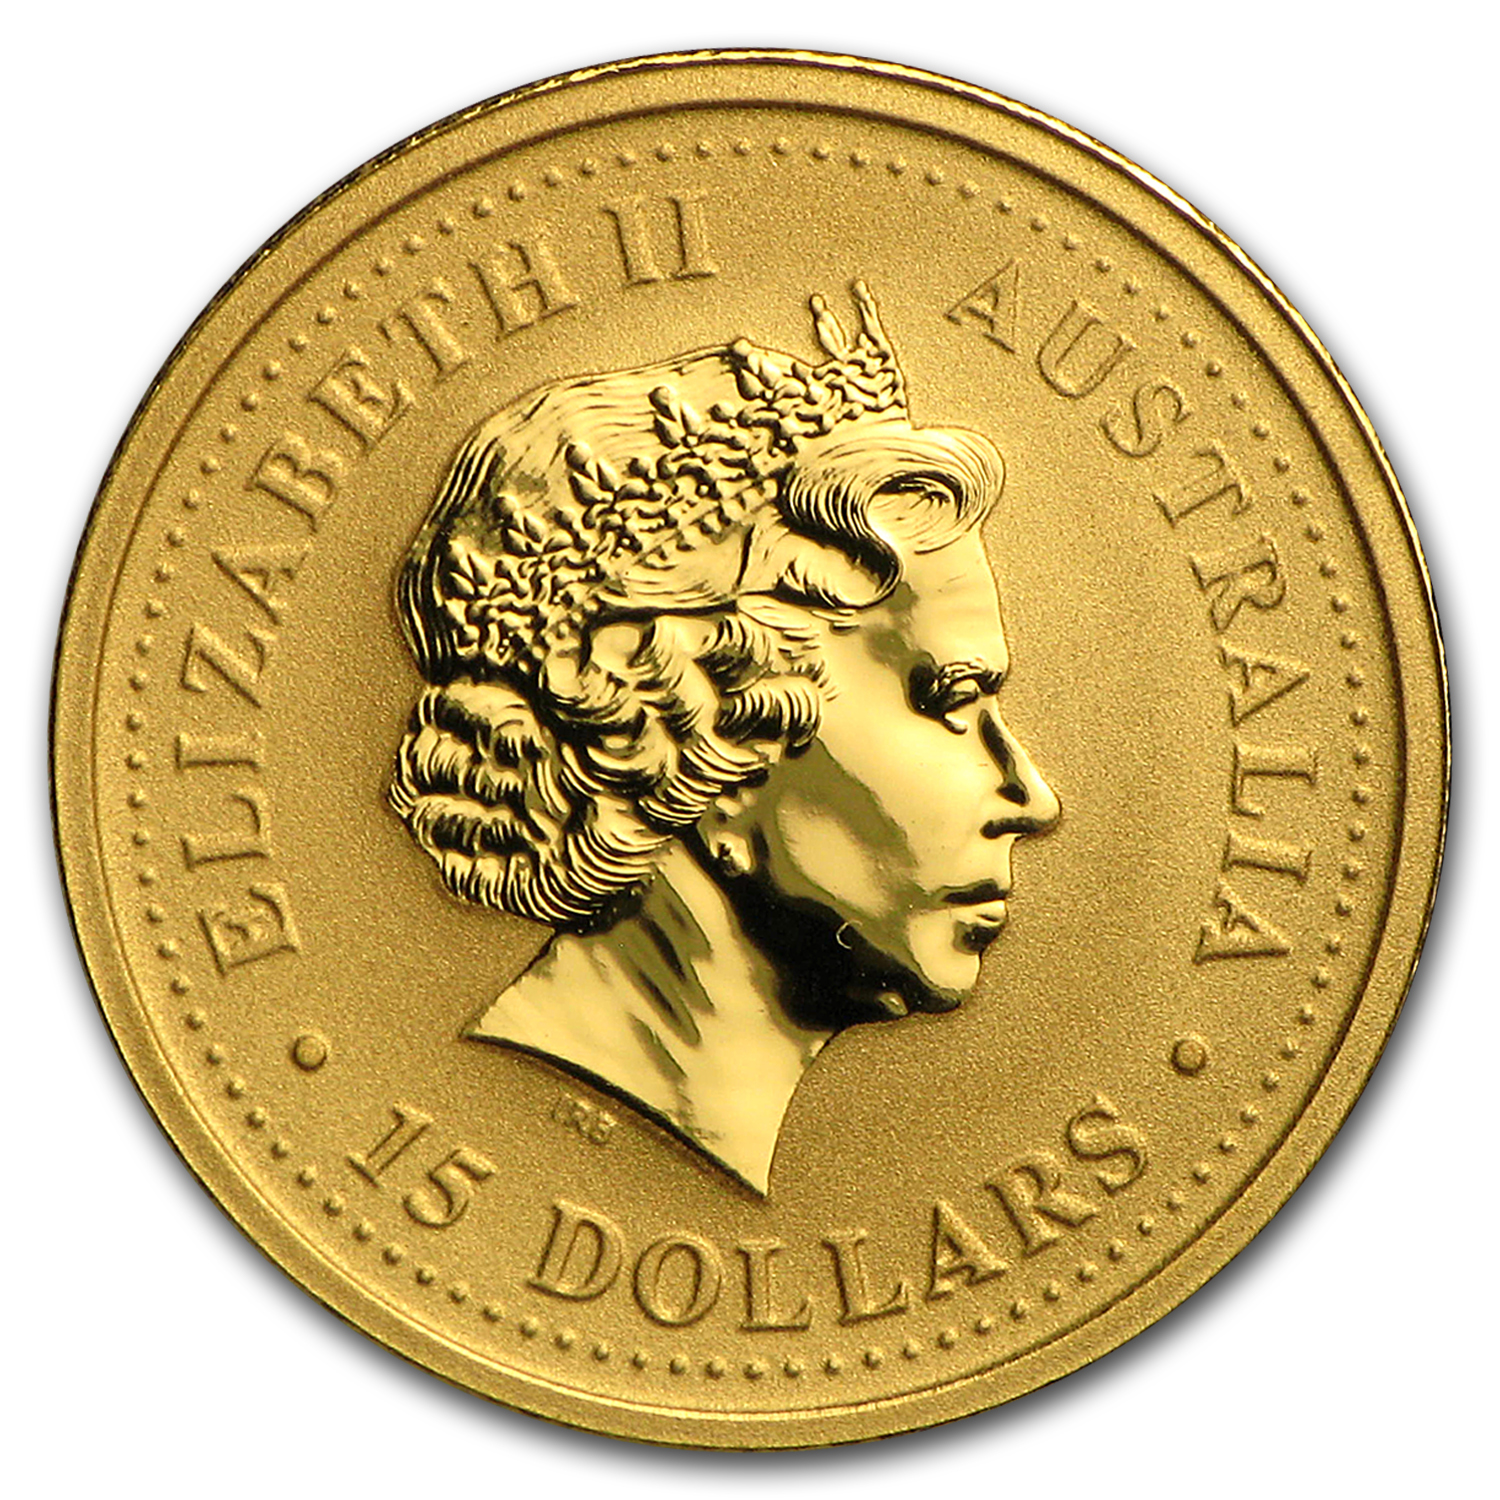 2006 1/10 oz Australian Gold Nugget